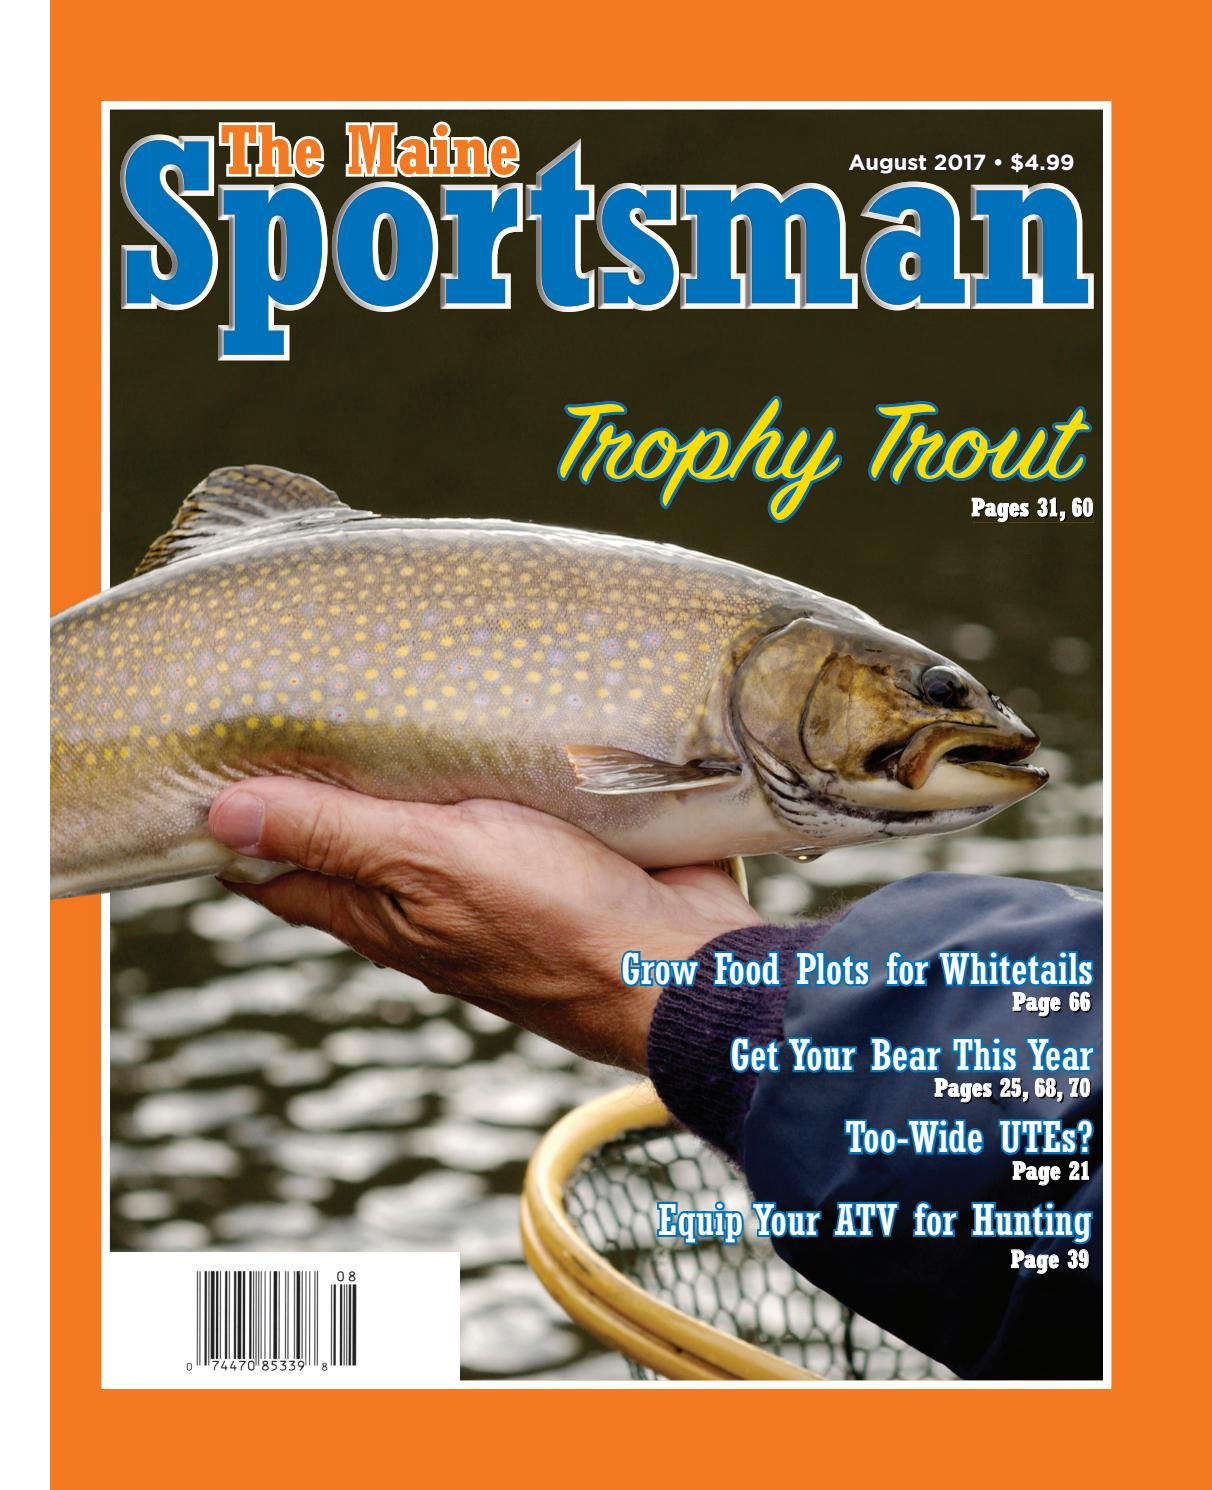 DREAM CATCH MONEY CLIP FISHING ROD SPORTSMAN FLY FISH TROUT BASS FREE SHIP/'